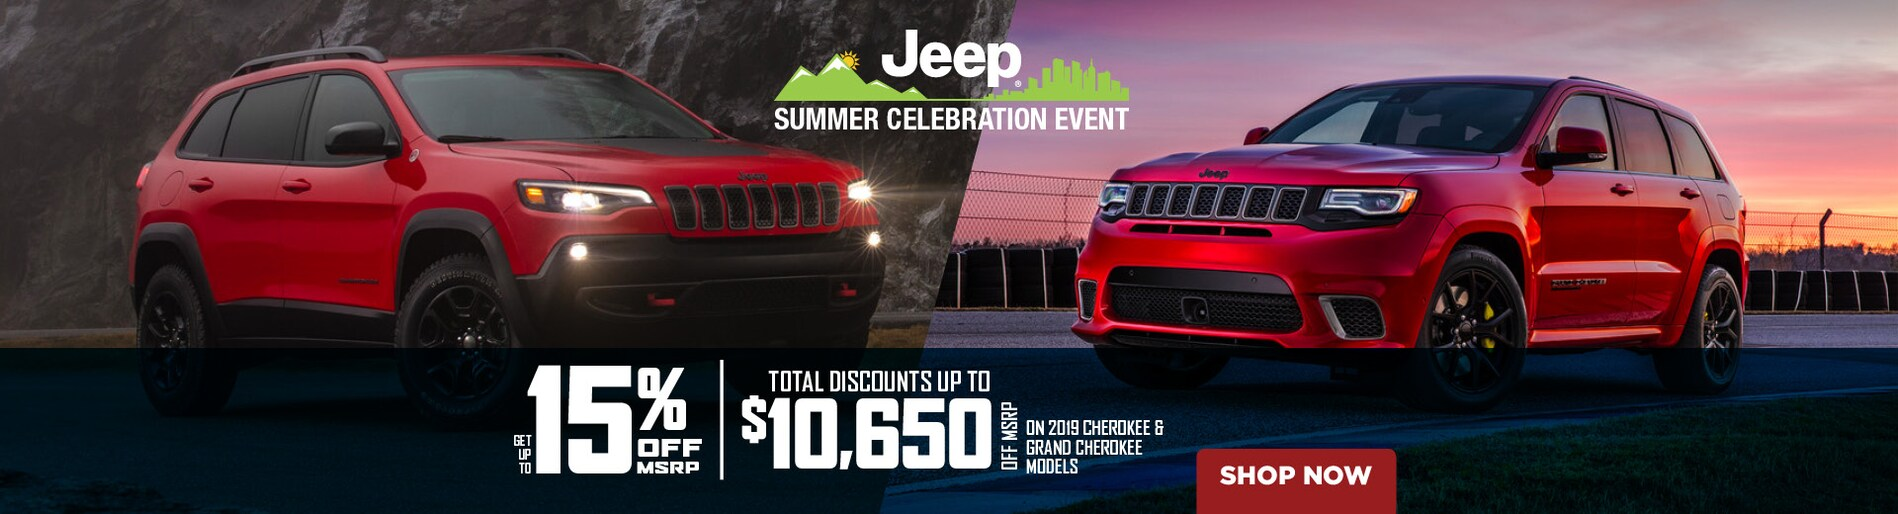 Chrysler Dodge Jeep Ram Moncton Nb Cars Trucks And Suvs For